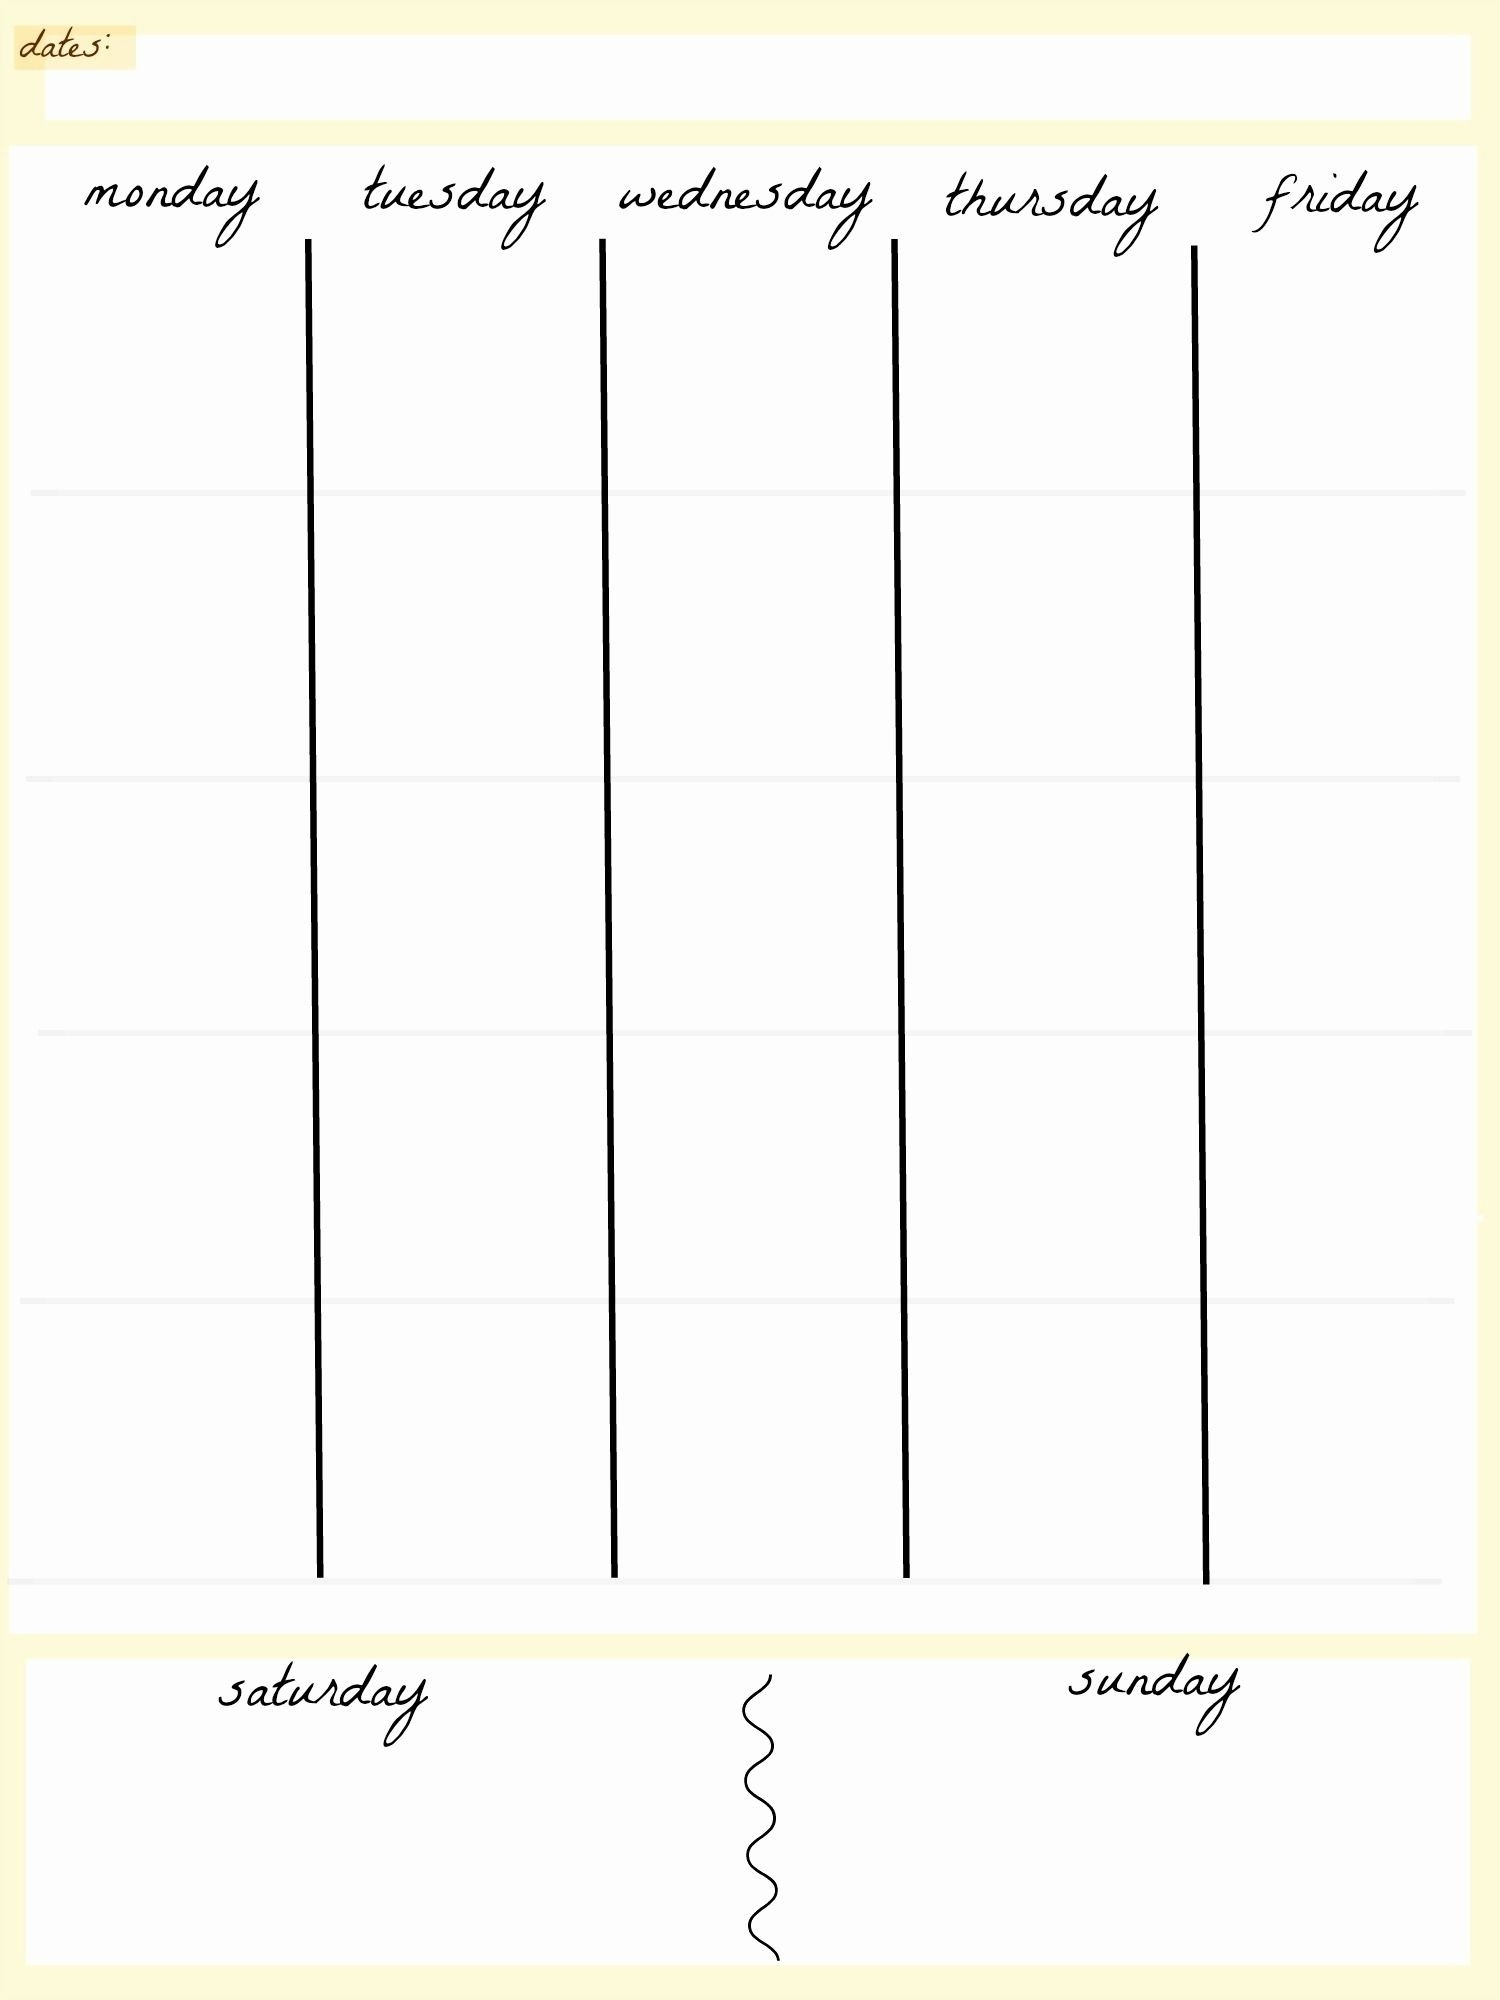 Take Blank 5 Day Calendar Printable (With Images) | Weekly-5 Day Week Calender Template